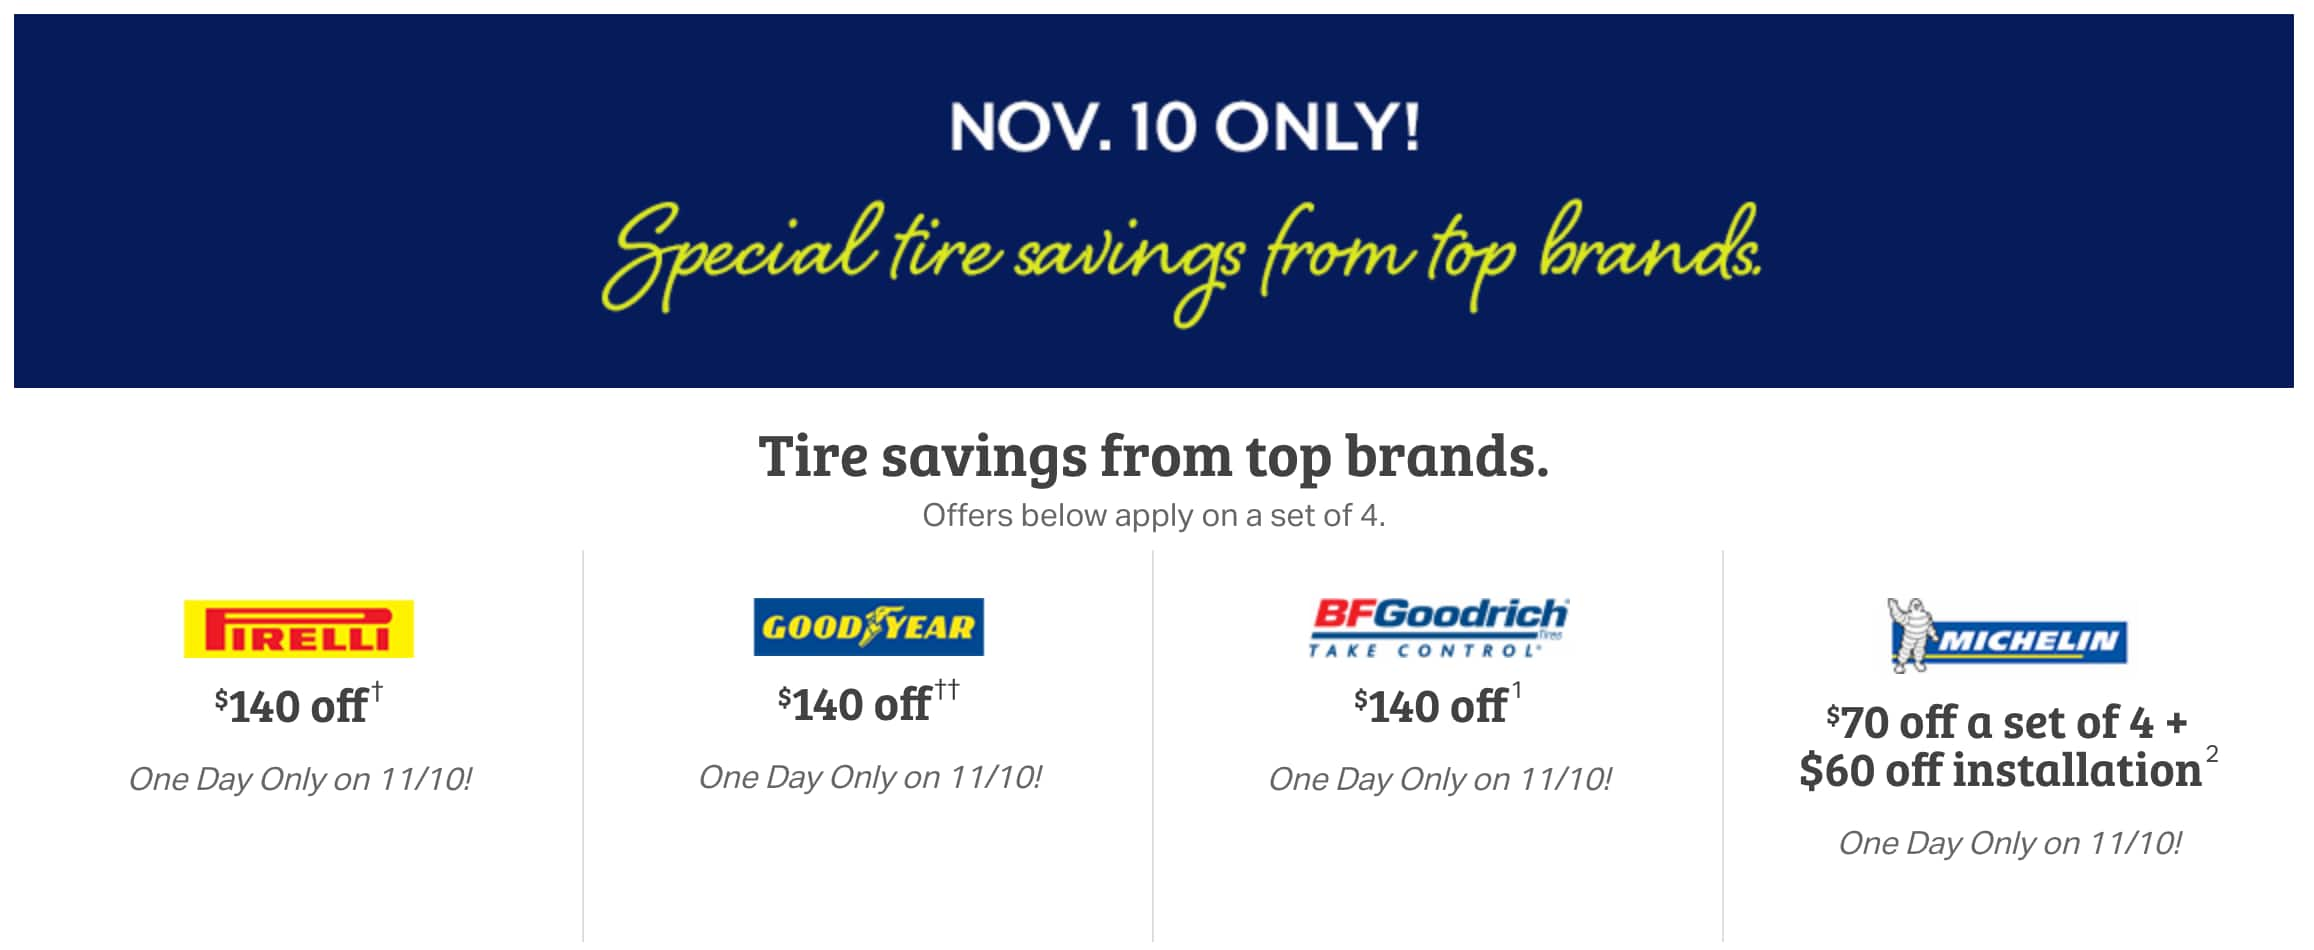 Free Tire Installation 60 Value Sams Club November 10th Only